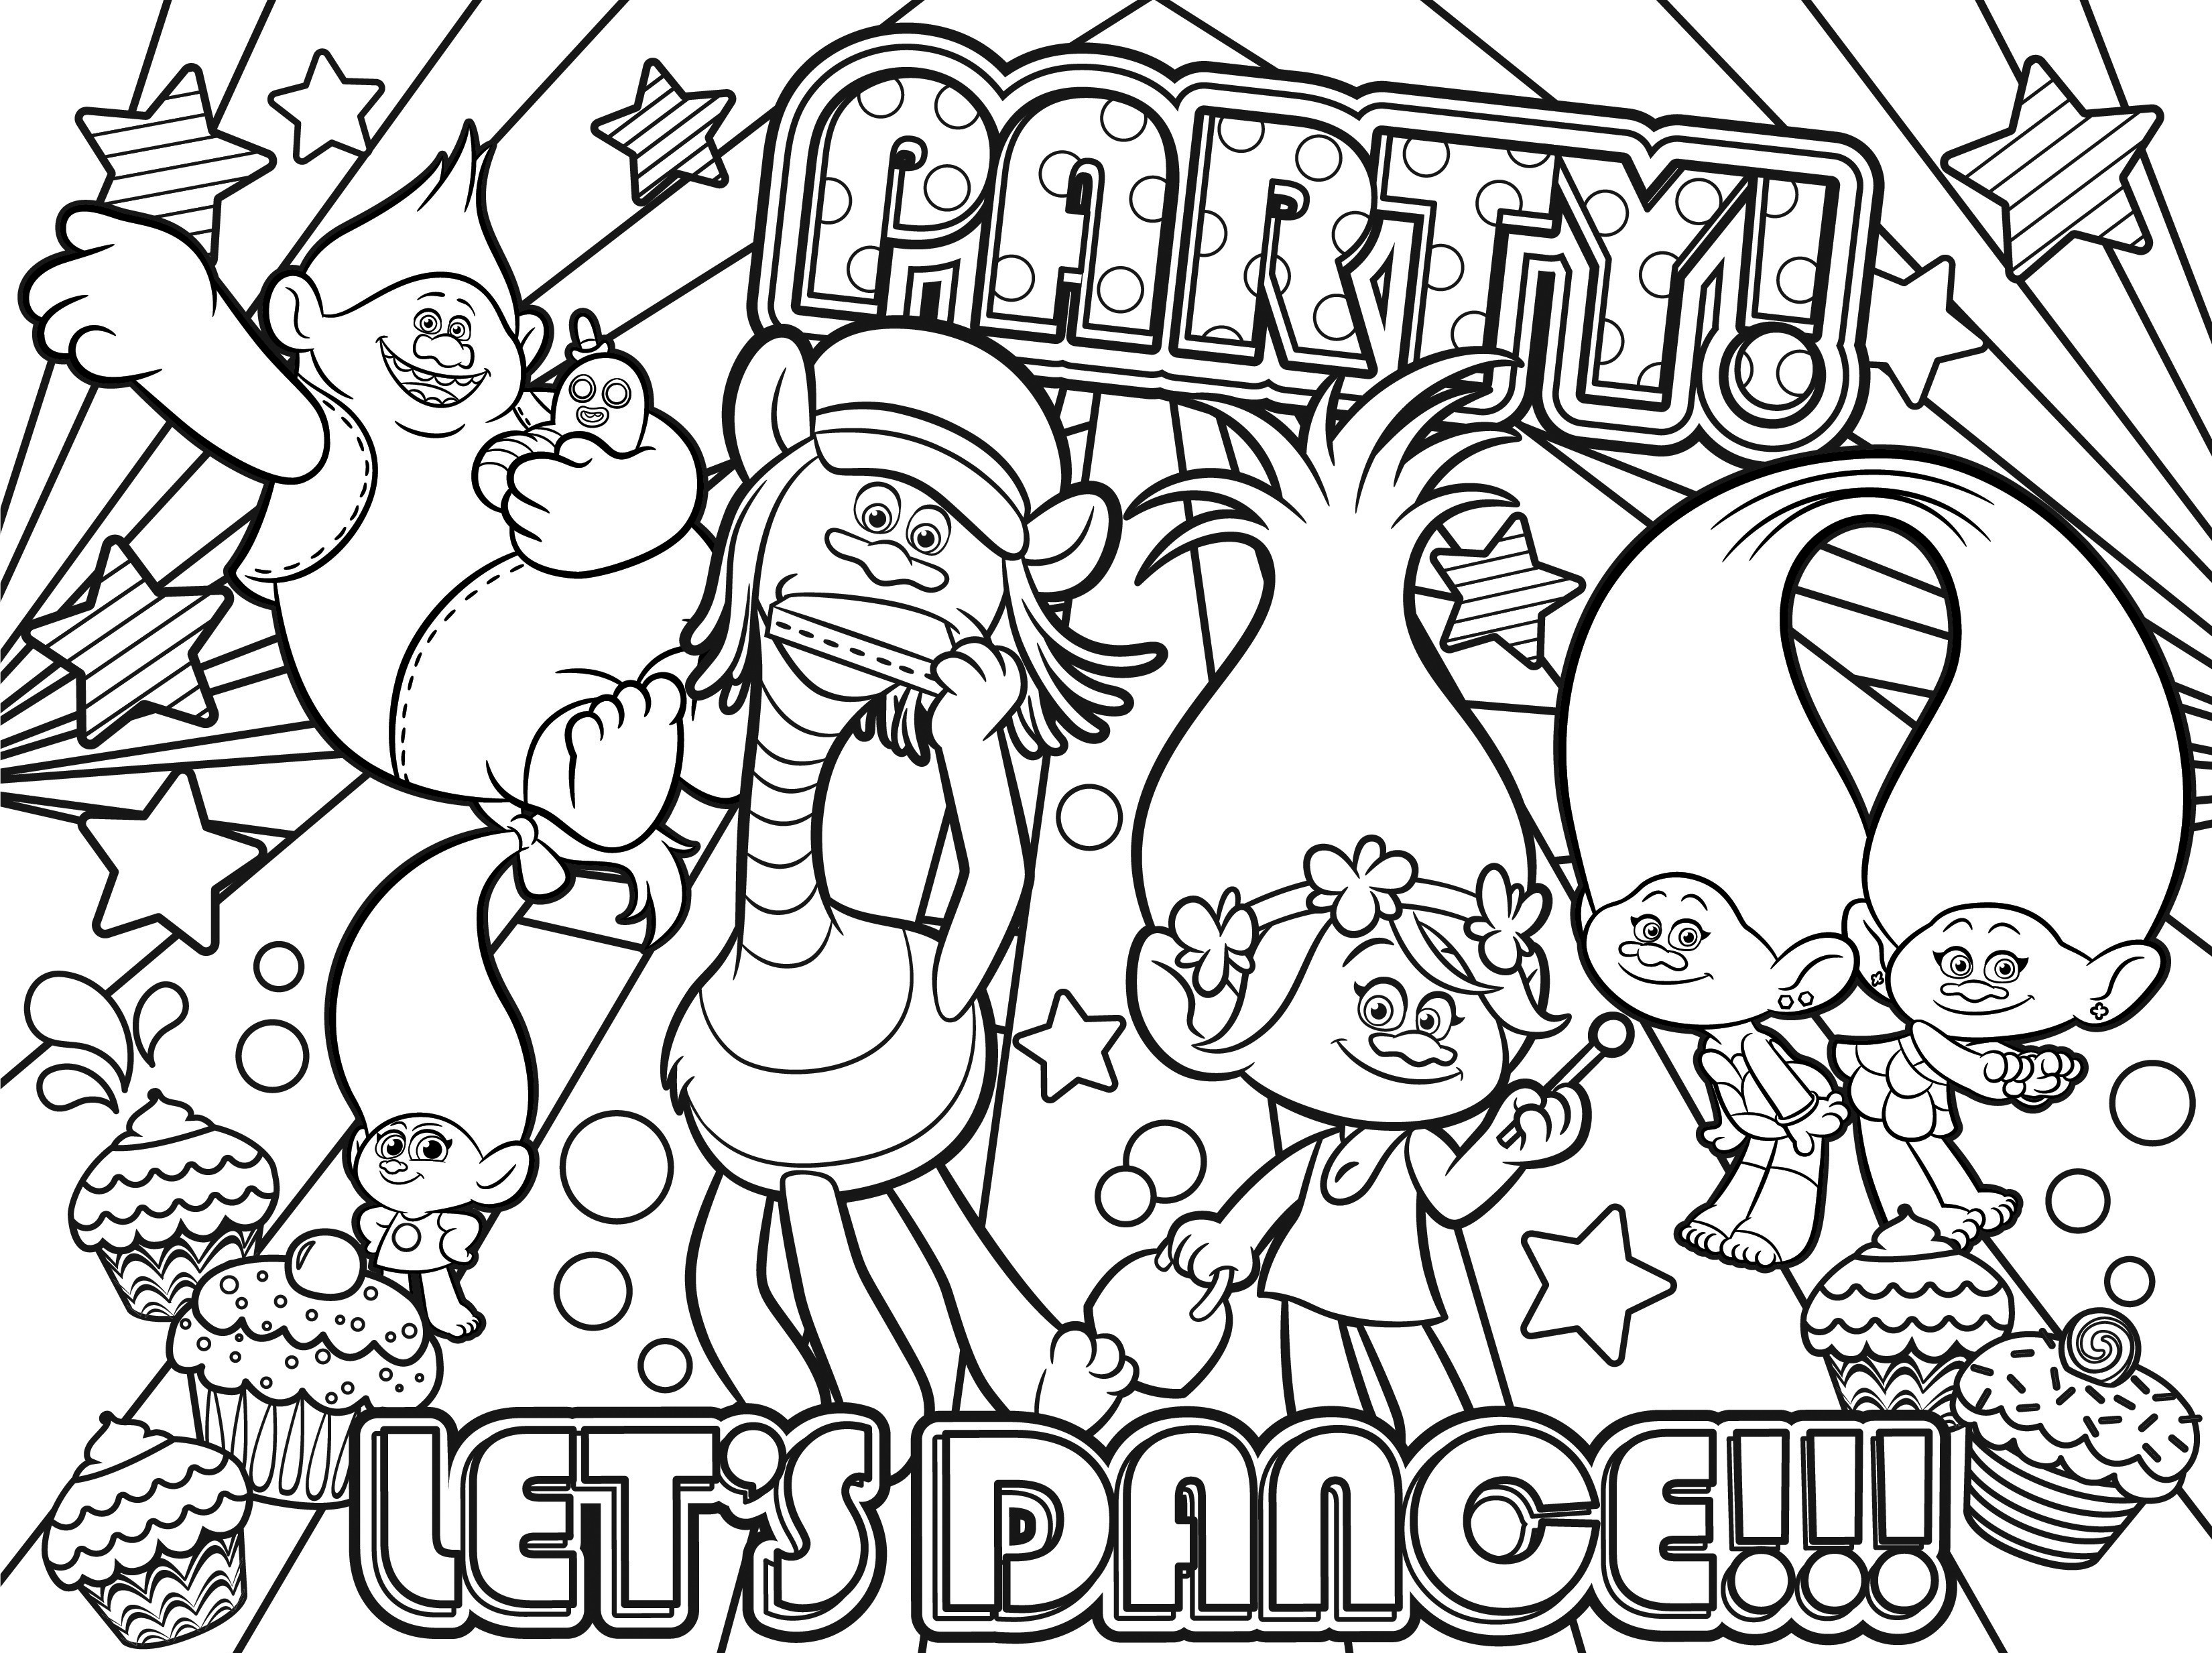 Lets Dance Poppy Coloring Pages